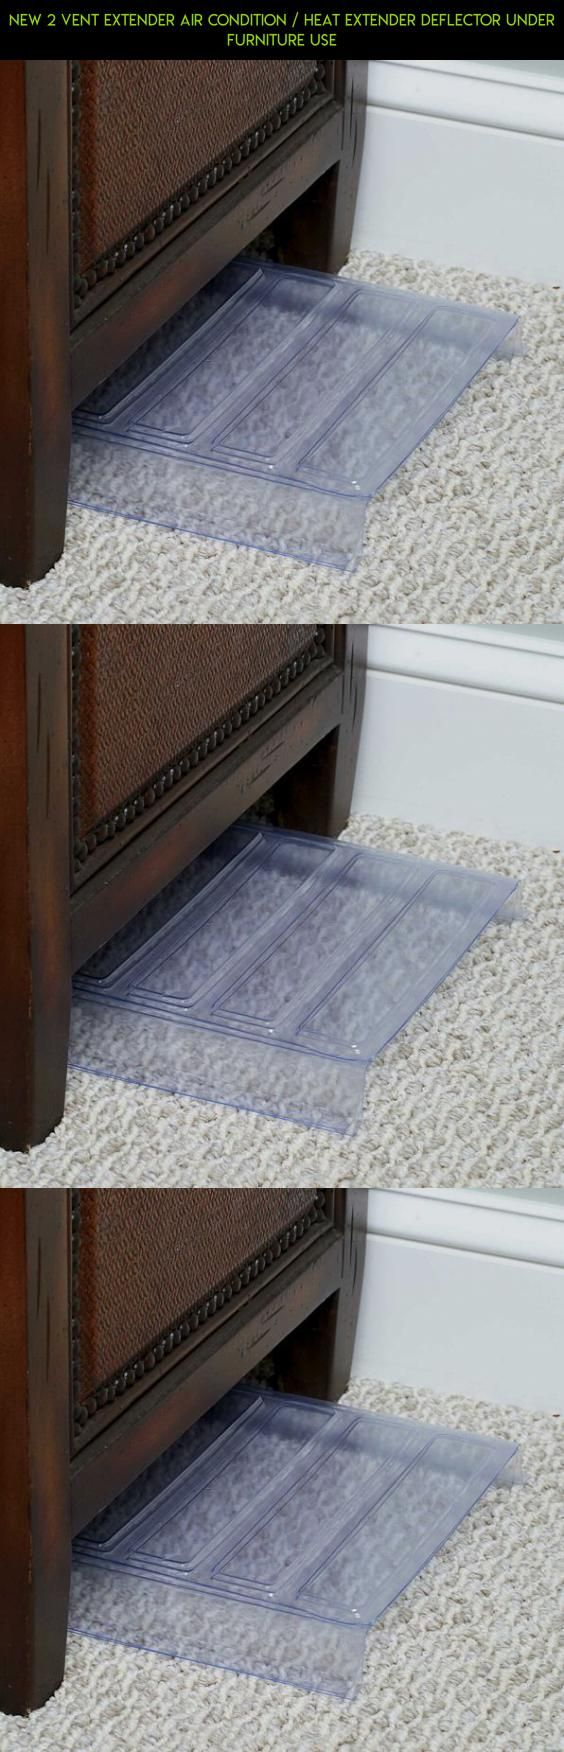 Amazing New 2 Vent Extender Air Condition / Heat Extender Deflector Under Furniture  Use #camera #